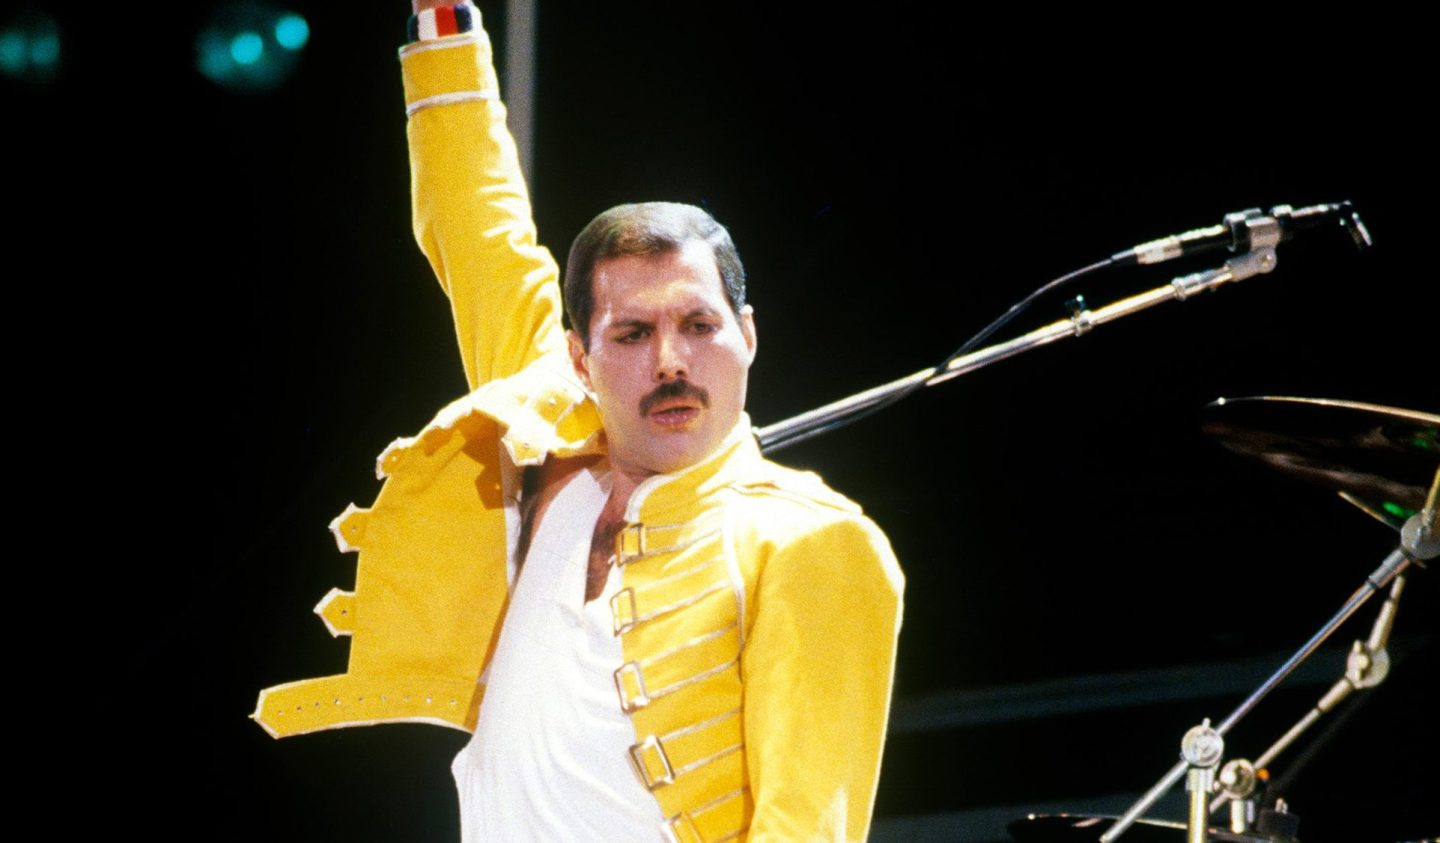 LEGENDS: The Changing Faces Of Freddie Mercury